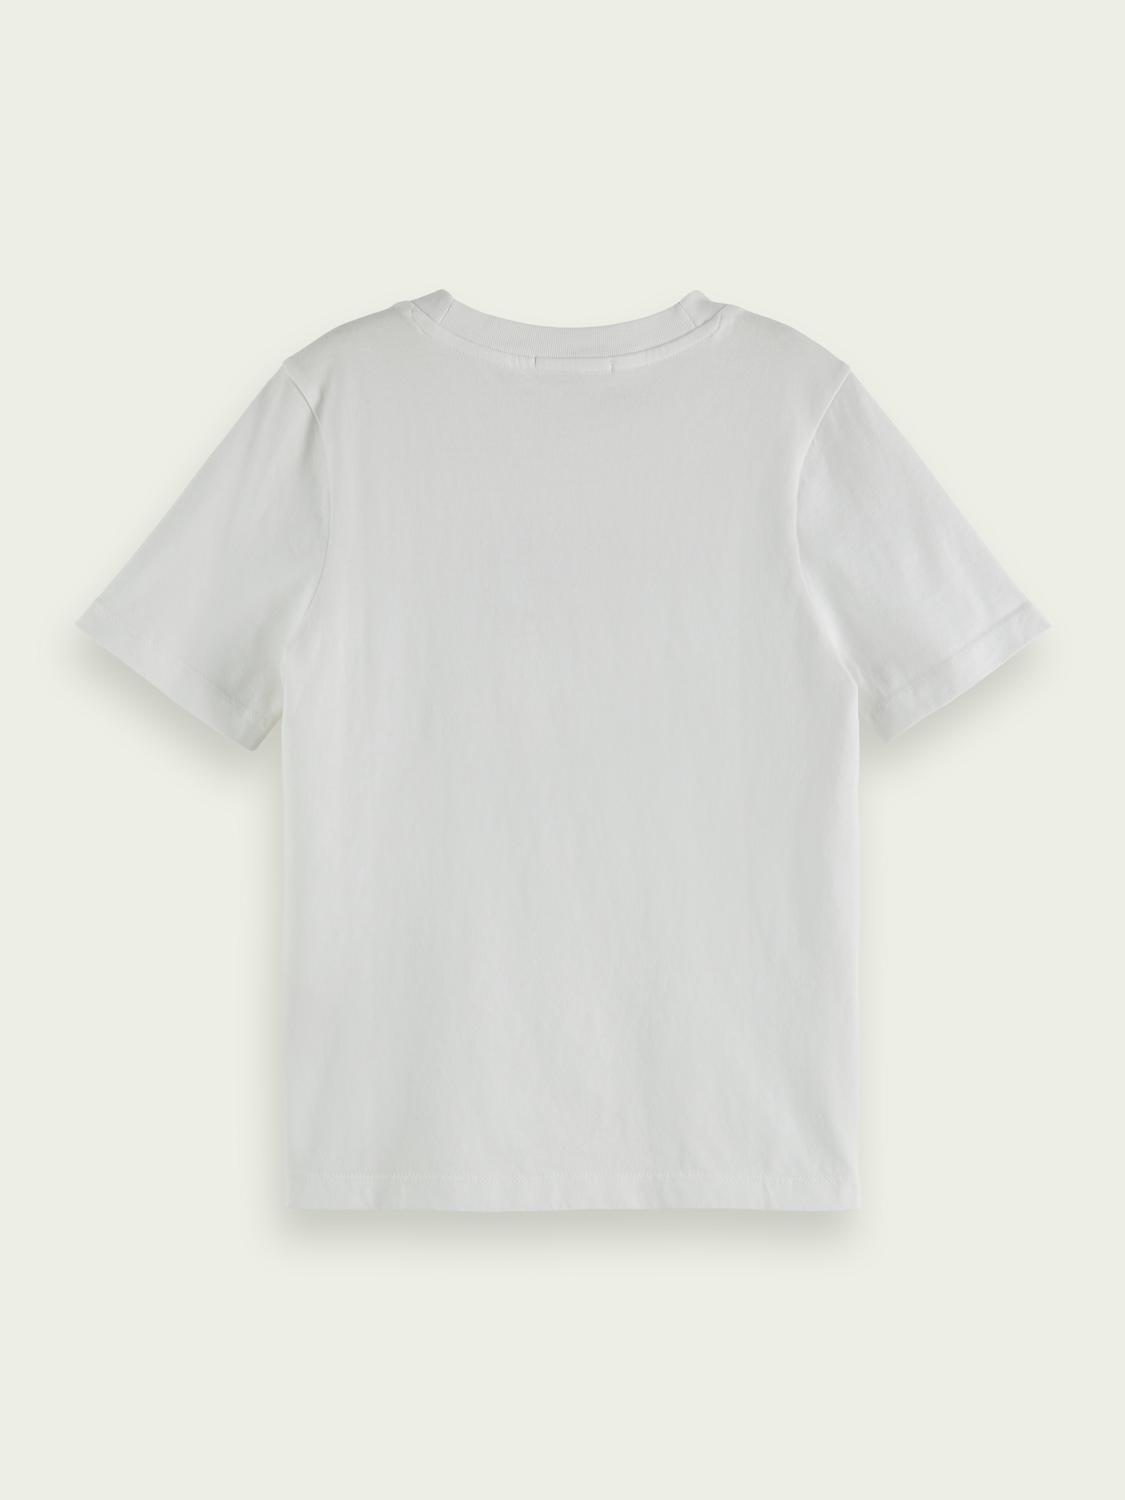 Kids Relaxed-fit graphic T-shirt